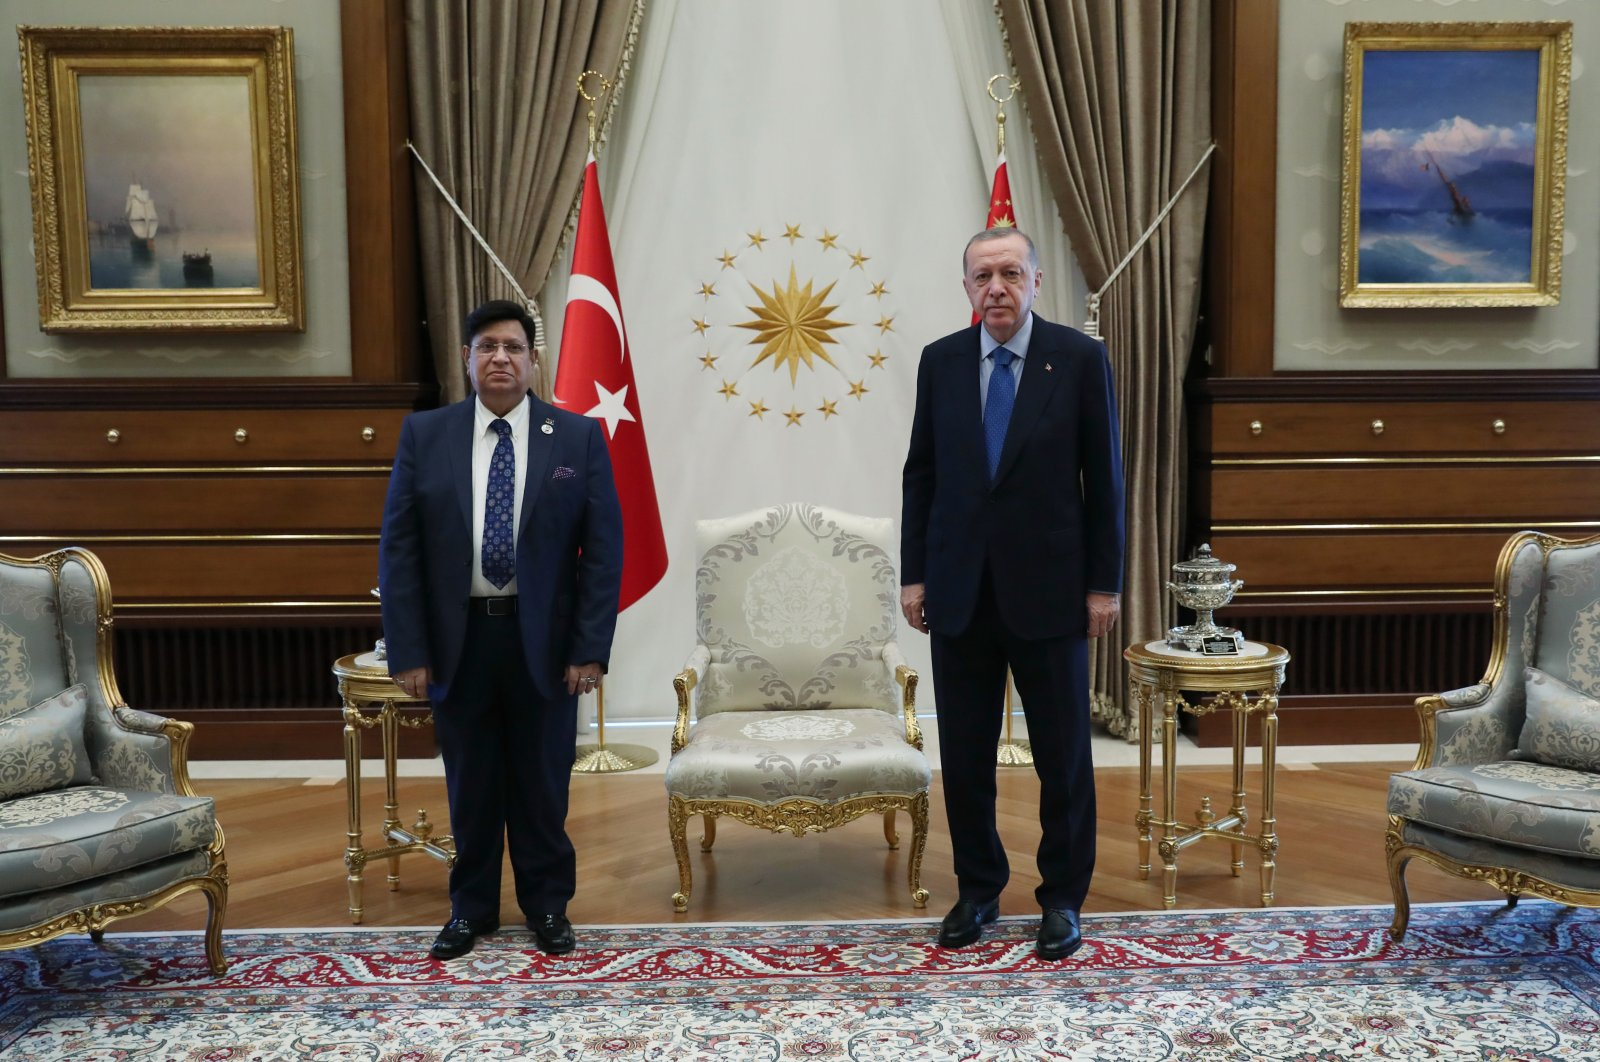 Bangladeshi Foreign Minister A.K. Abdul Momen (L) and President Recep Tayyip Erdoğan pose for a picture at the Presidential Complex in Ankara, Turkey, Sept. 17, 2020. (AA Photo)